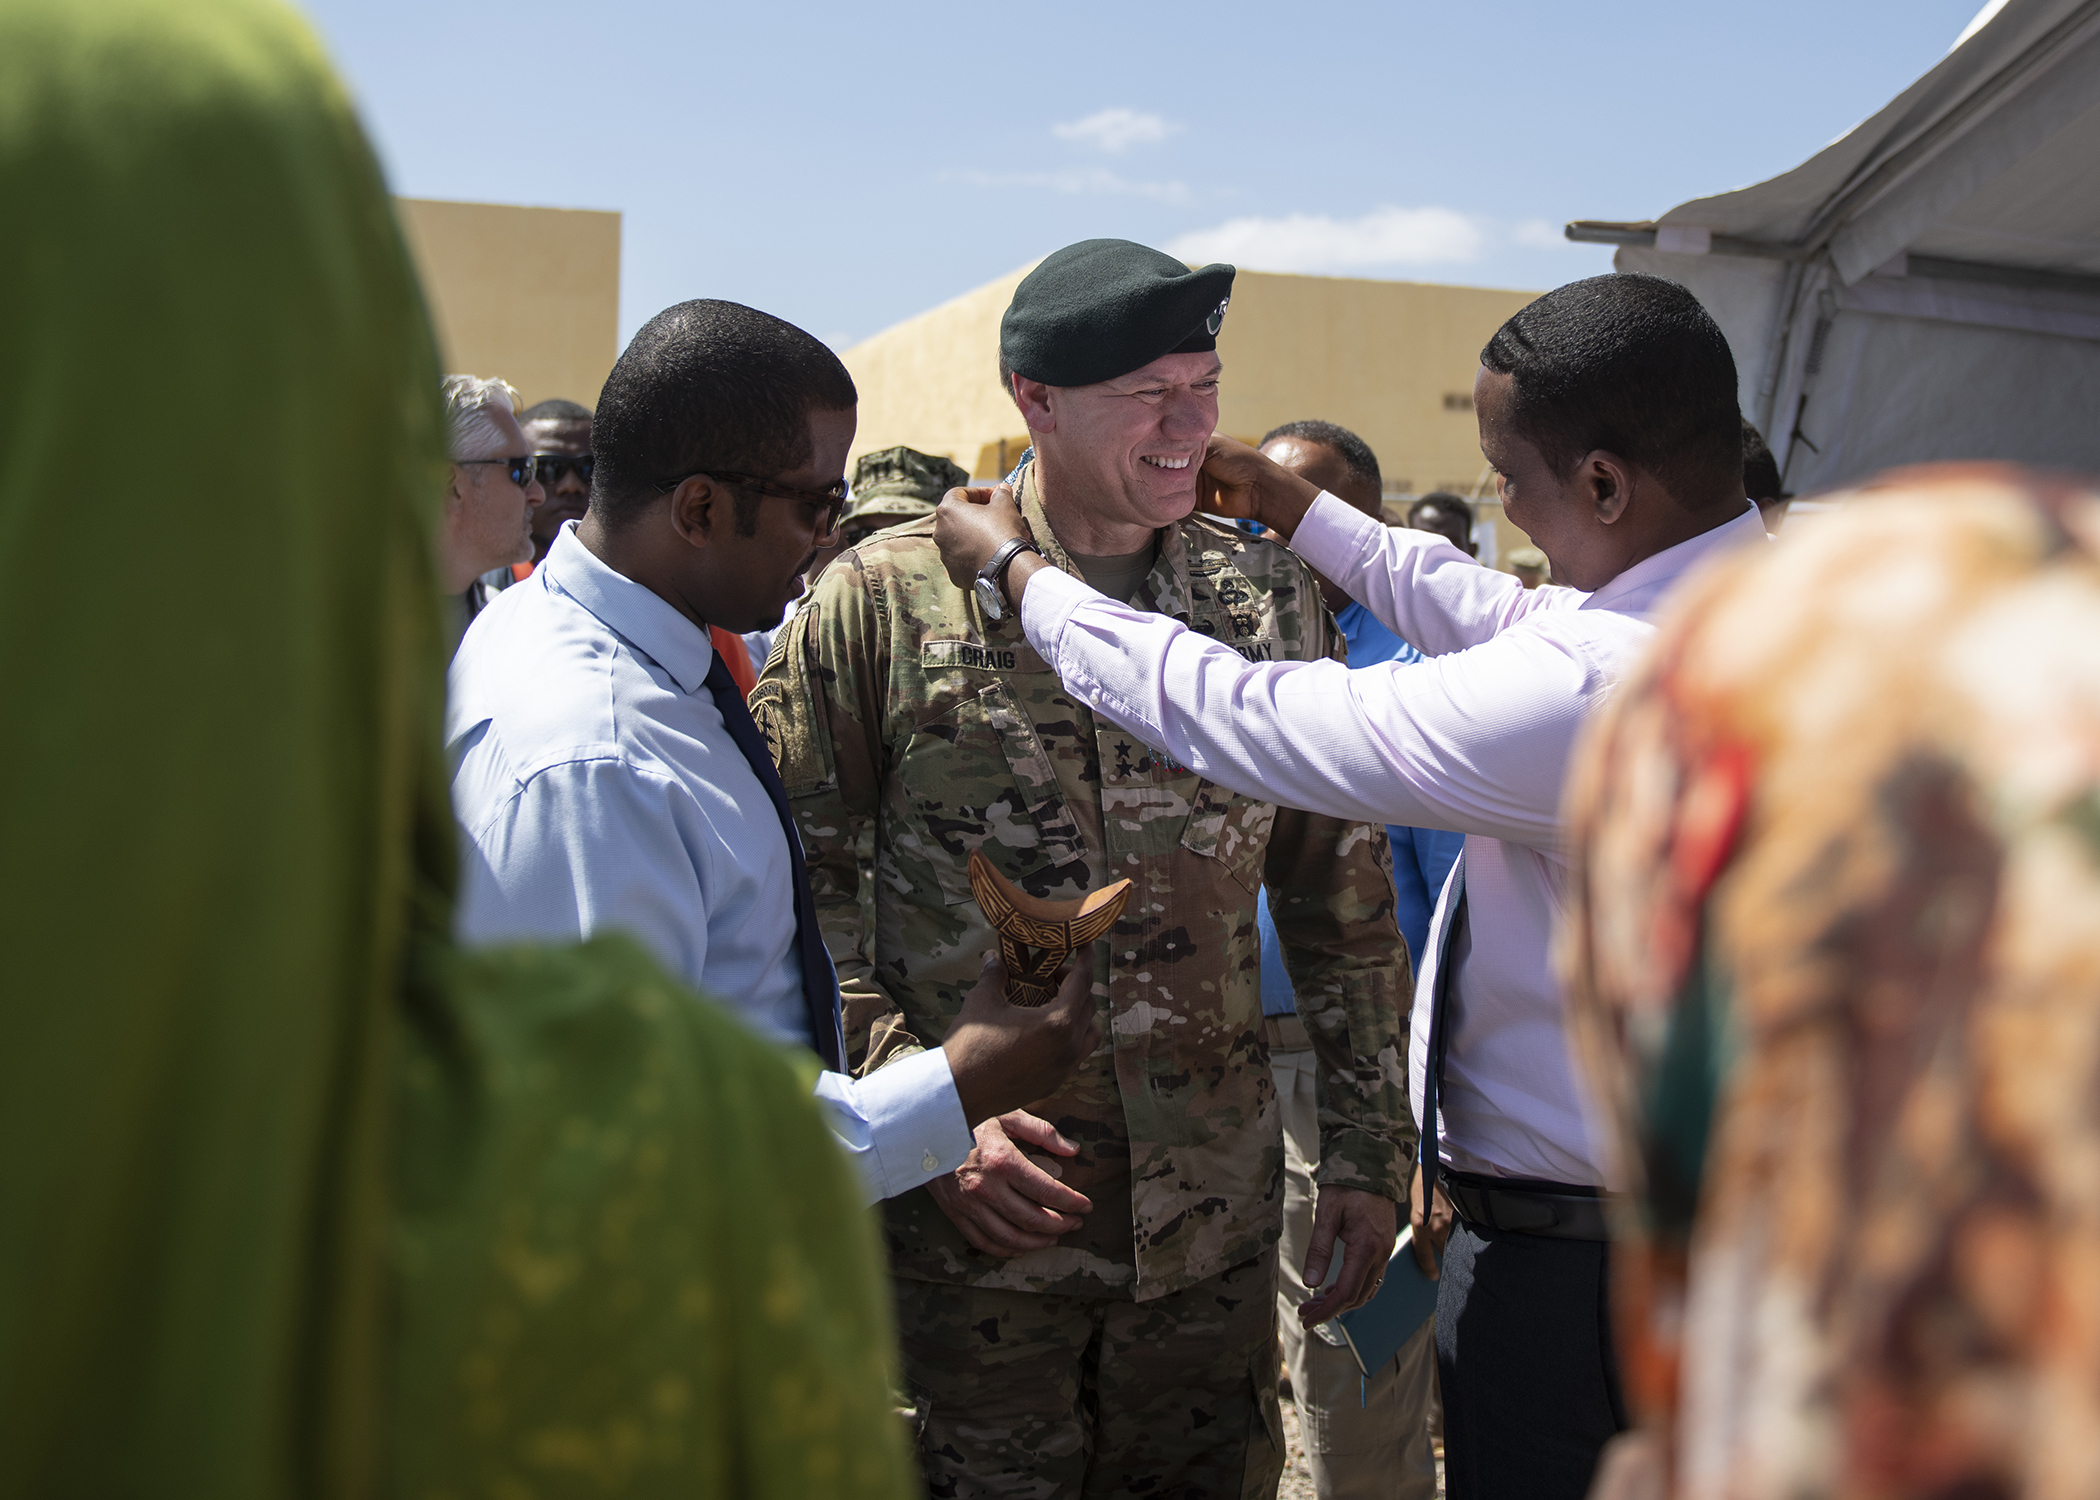 U.S. Army Maj. Gen. James D. Craig, commanding general, Combined Joint Task Force-Horn of Africa (CJTF-HOA), receives a gift from Djiboutian government officials during the Ali Oune Medical Clinic ribbon cutting ceremony in Ali Oune, Djibouti, Jan. 31, 2019. The clinic, which U.S. Navy Seabees from Naval Mobile Construction Battalion 1, assigned to CJTF-HOA, have been working to complete for five months, is intended to enhance the Ministry of Health for Djibouti's ability to provide basic medical, birth and after care to the Ali Oune village and its more than 1,000 residents and rural neighbors. (U.S. Air Force photo by Tech. Sgt. Shawn Nickel)